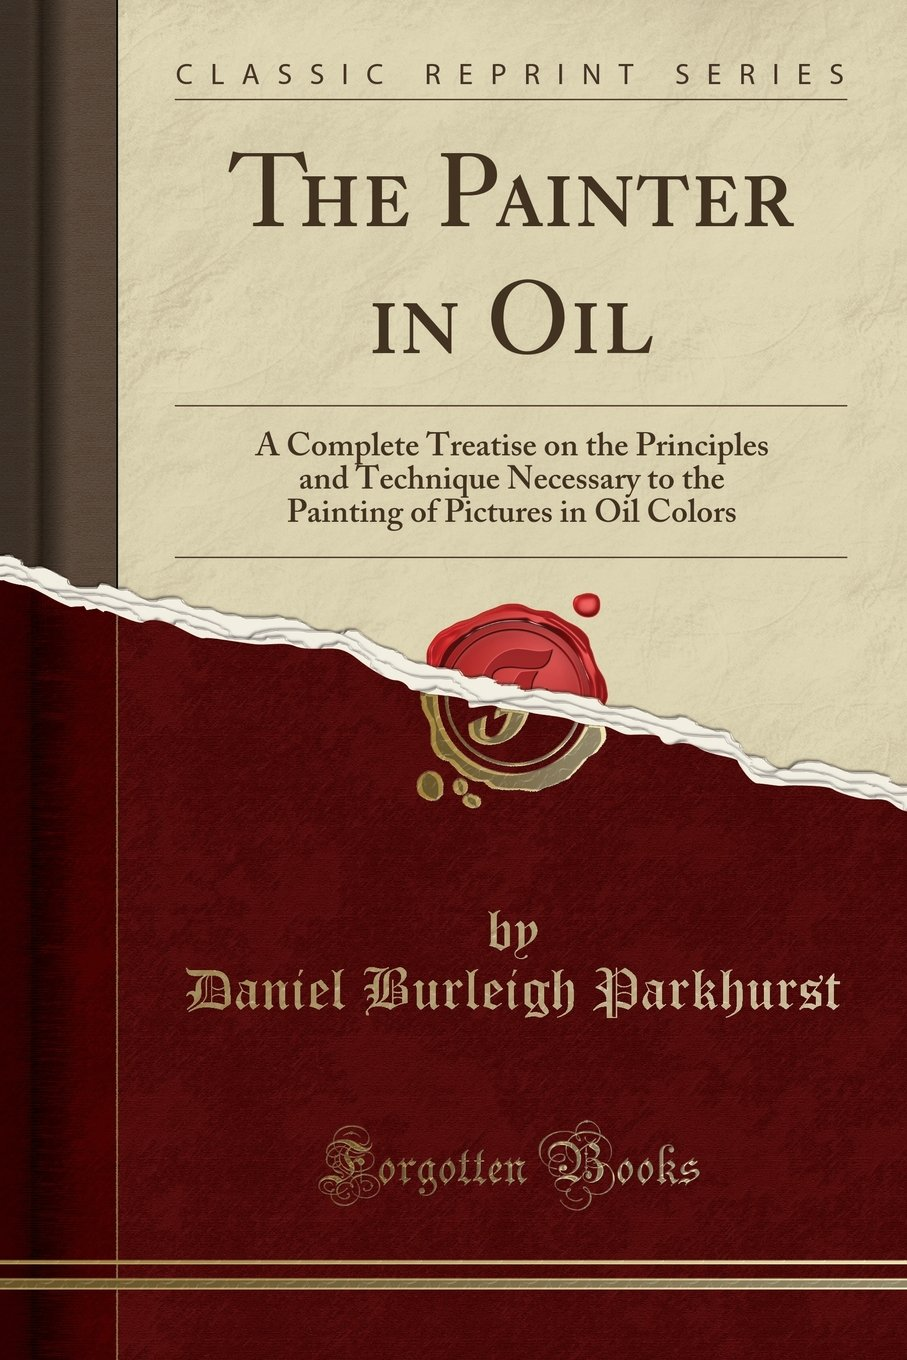 The Painter in Oil: A Complete Treatise on the Principles and Technique Necessary to the Painting of Pictures in Oil Colors (Classic Reprint)